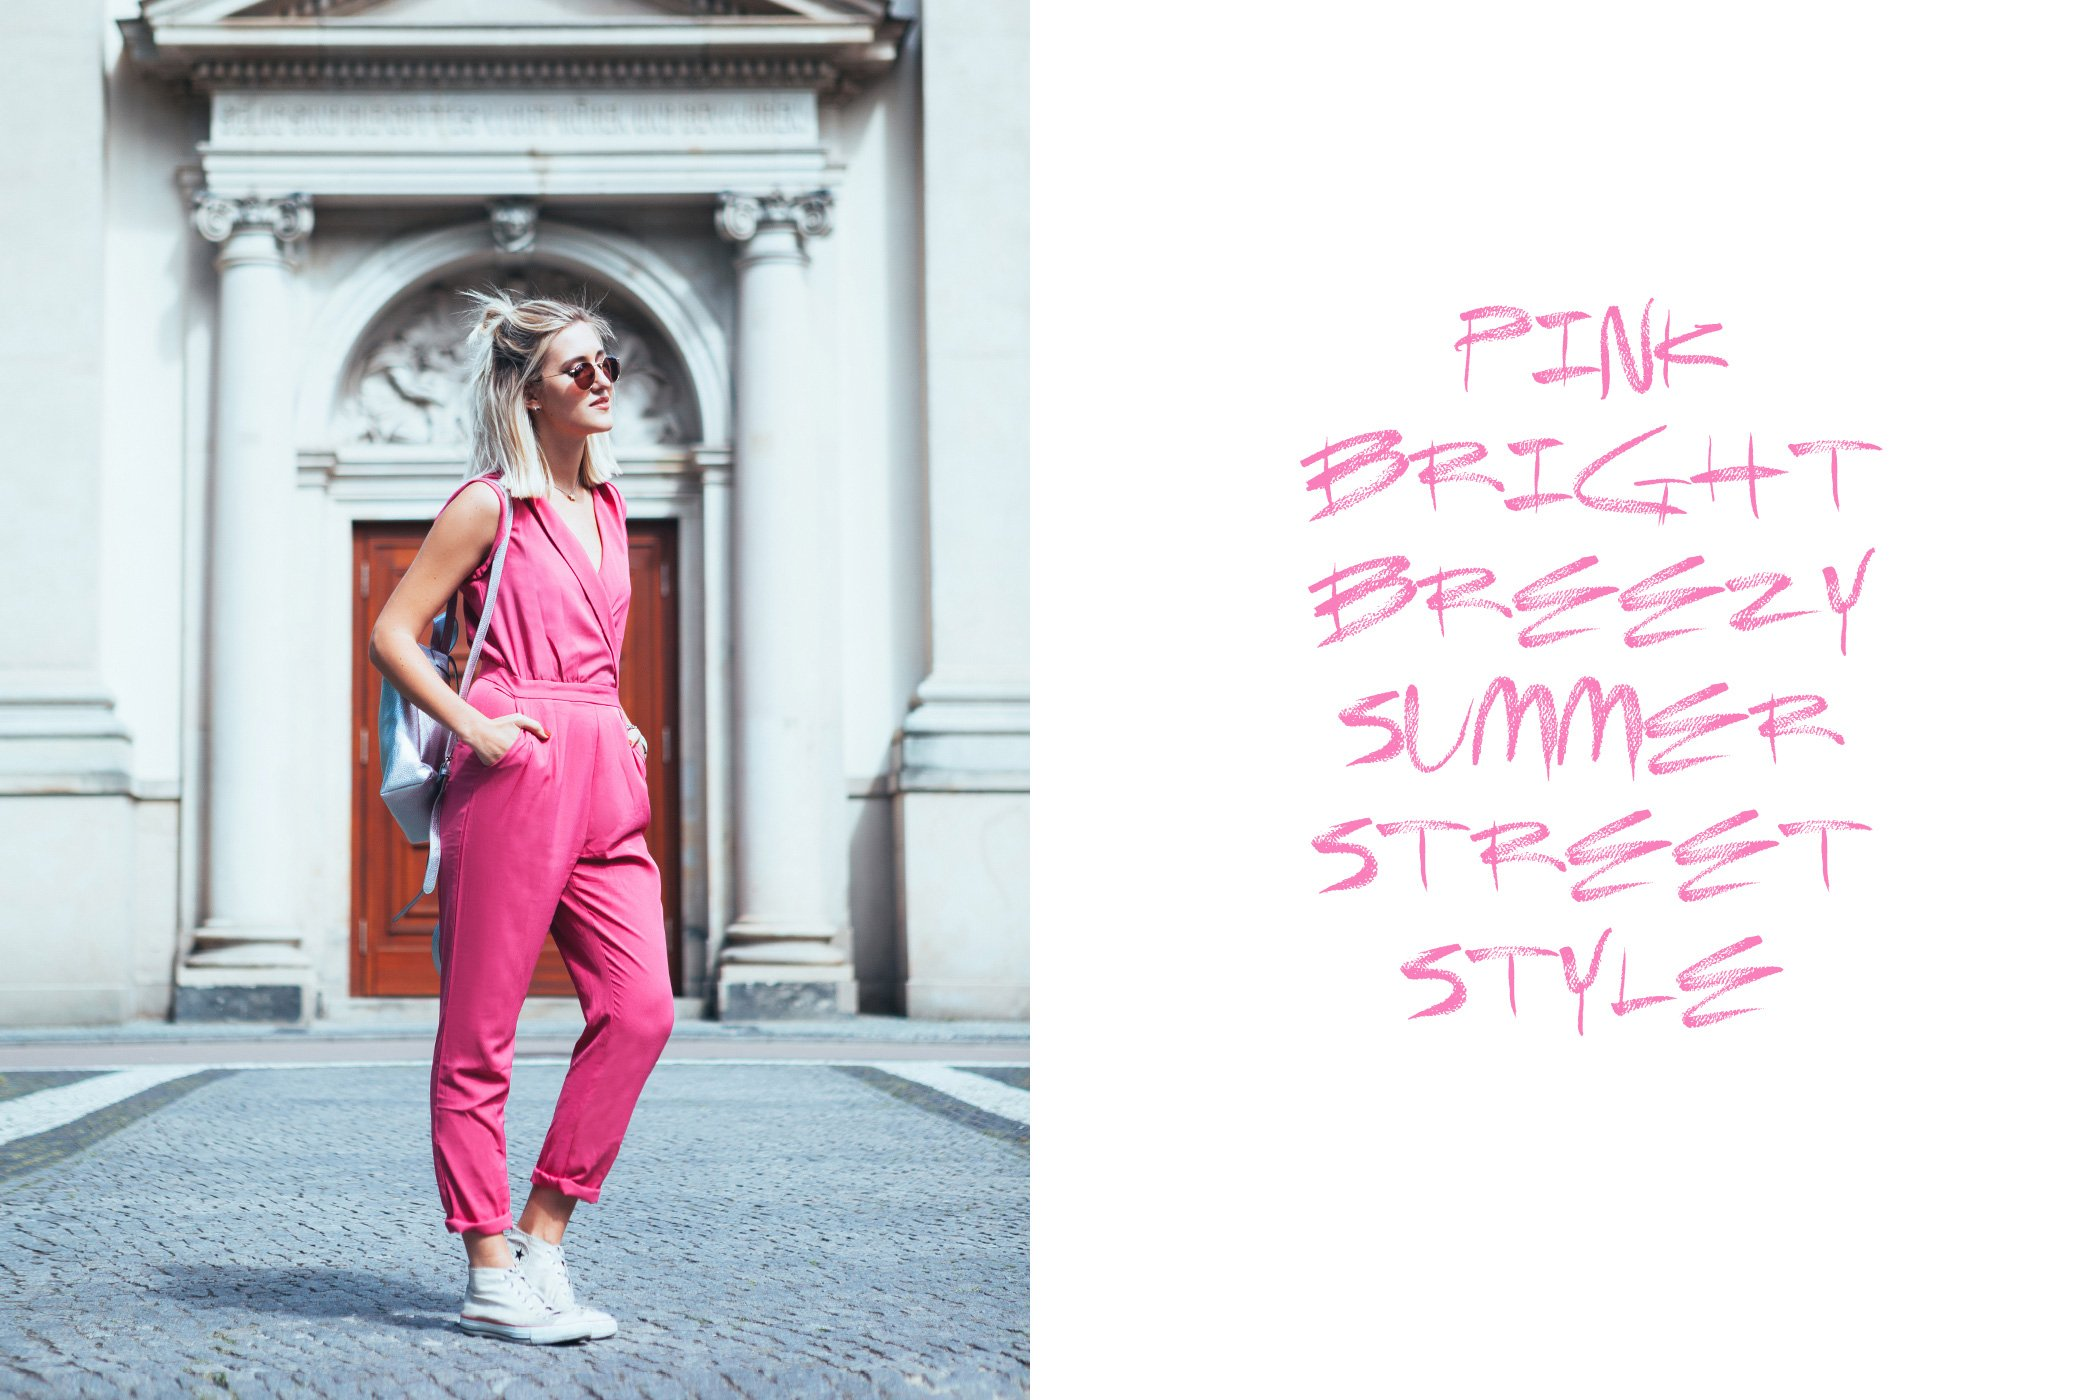 mikuta in pink bright breezy summer street style jumpsuit